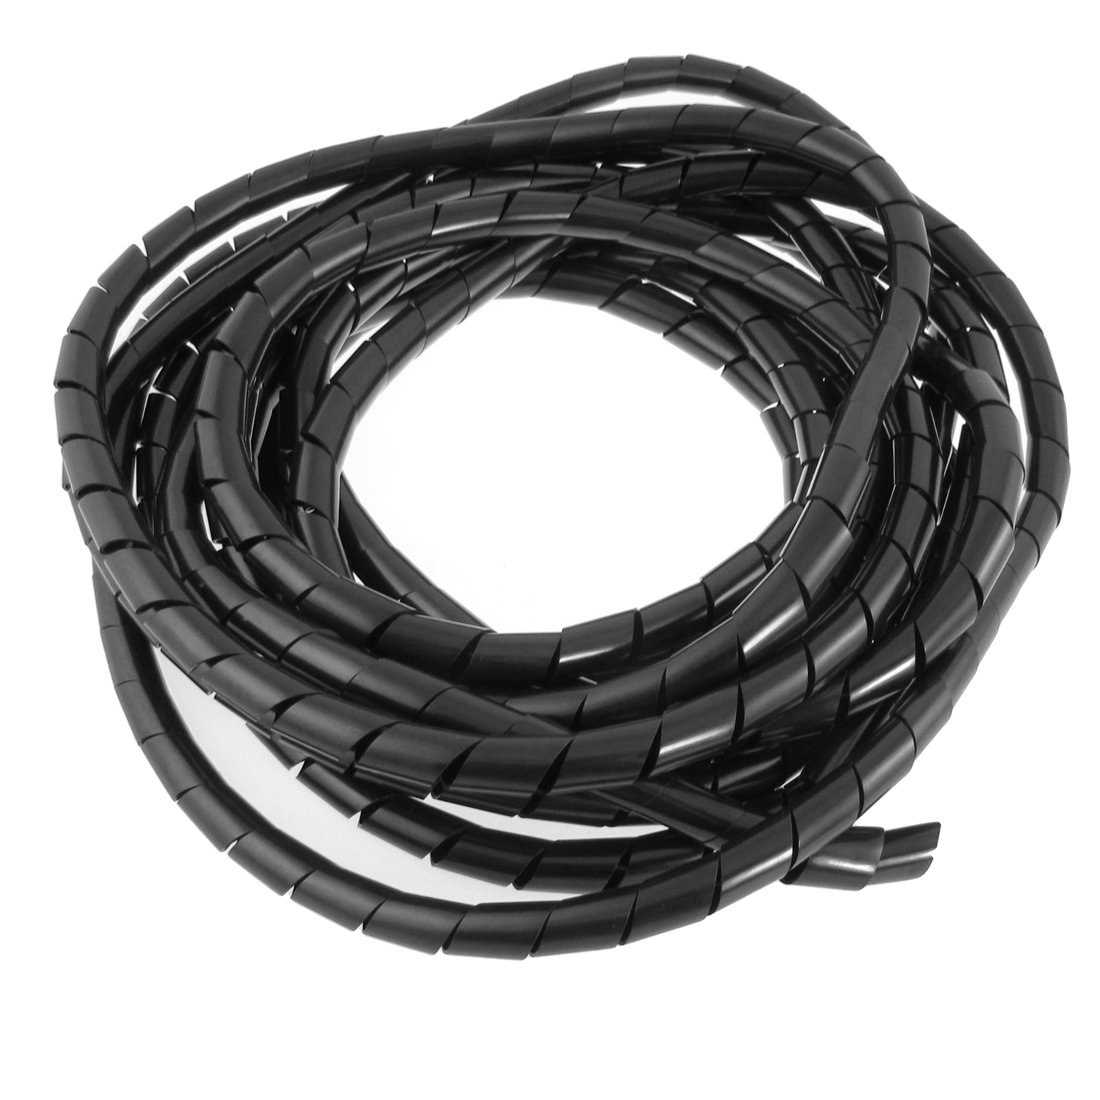 THGS 12mm Outside Dia 22 Ft Flexible Spiral Wire Wrap Desktop PC ...